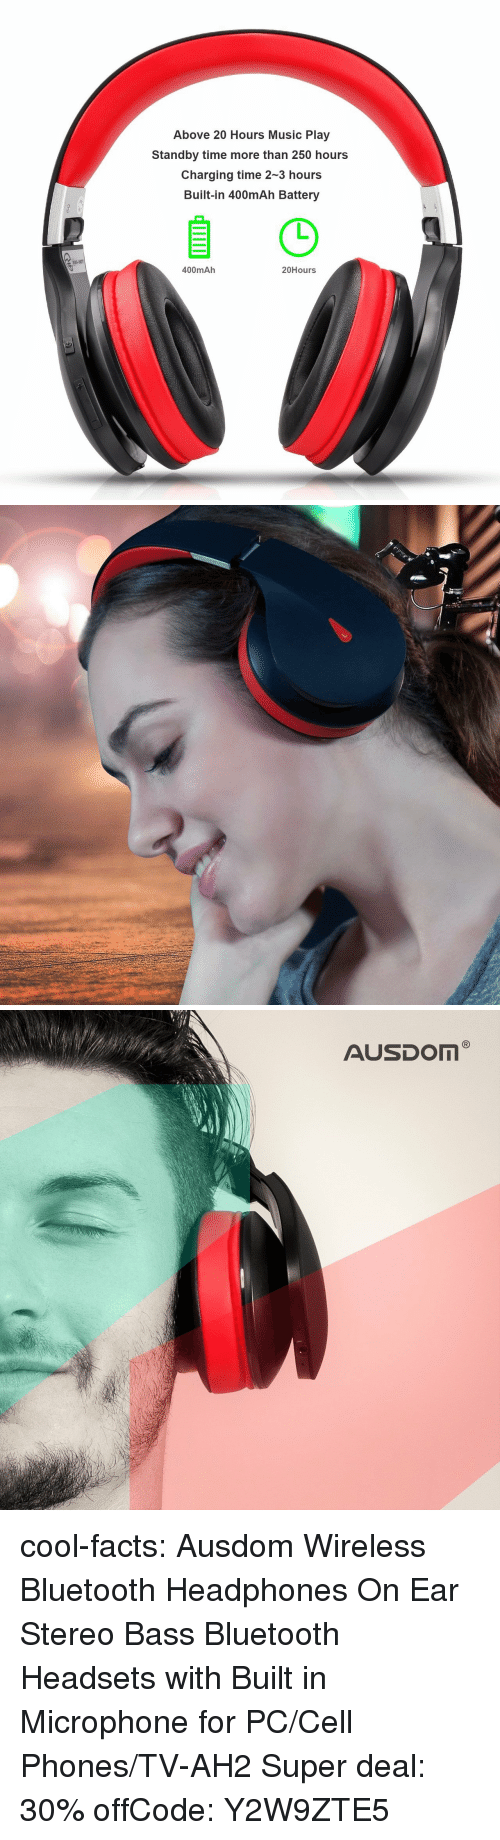 wireless: Above 20 Hours Music Play  Standby time more than 250 hours  Charging time 2-3 hours  Built-in 400mAh Battery  400mAh  20Hours cool-facts:   Ausdom Wireless Bluetooth Headphones   On Ear Stereo Bass Bluetooth Headsets with Built in Microphone for PC/Cell Phones/TV-AH2   Super deal: 30% offCode: Y2W9ZTE5